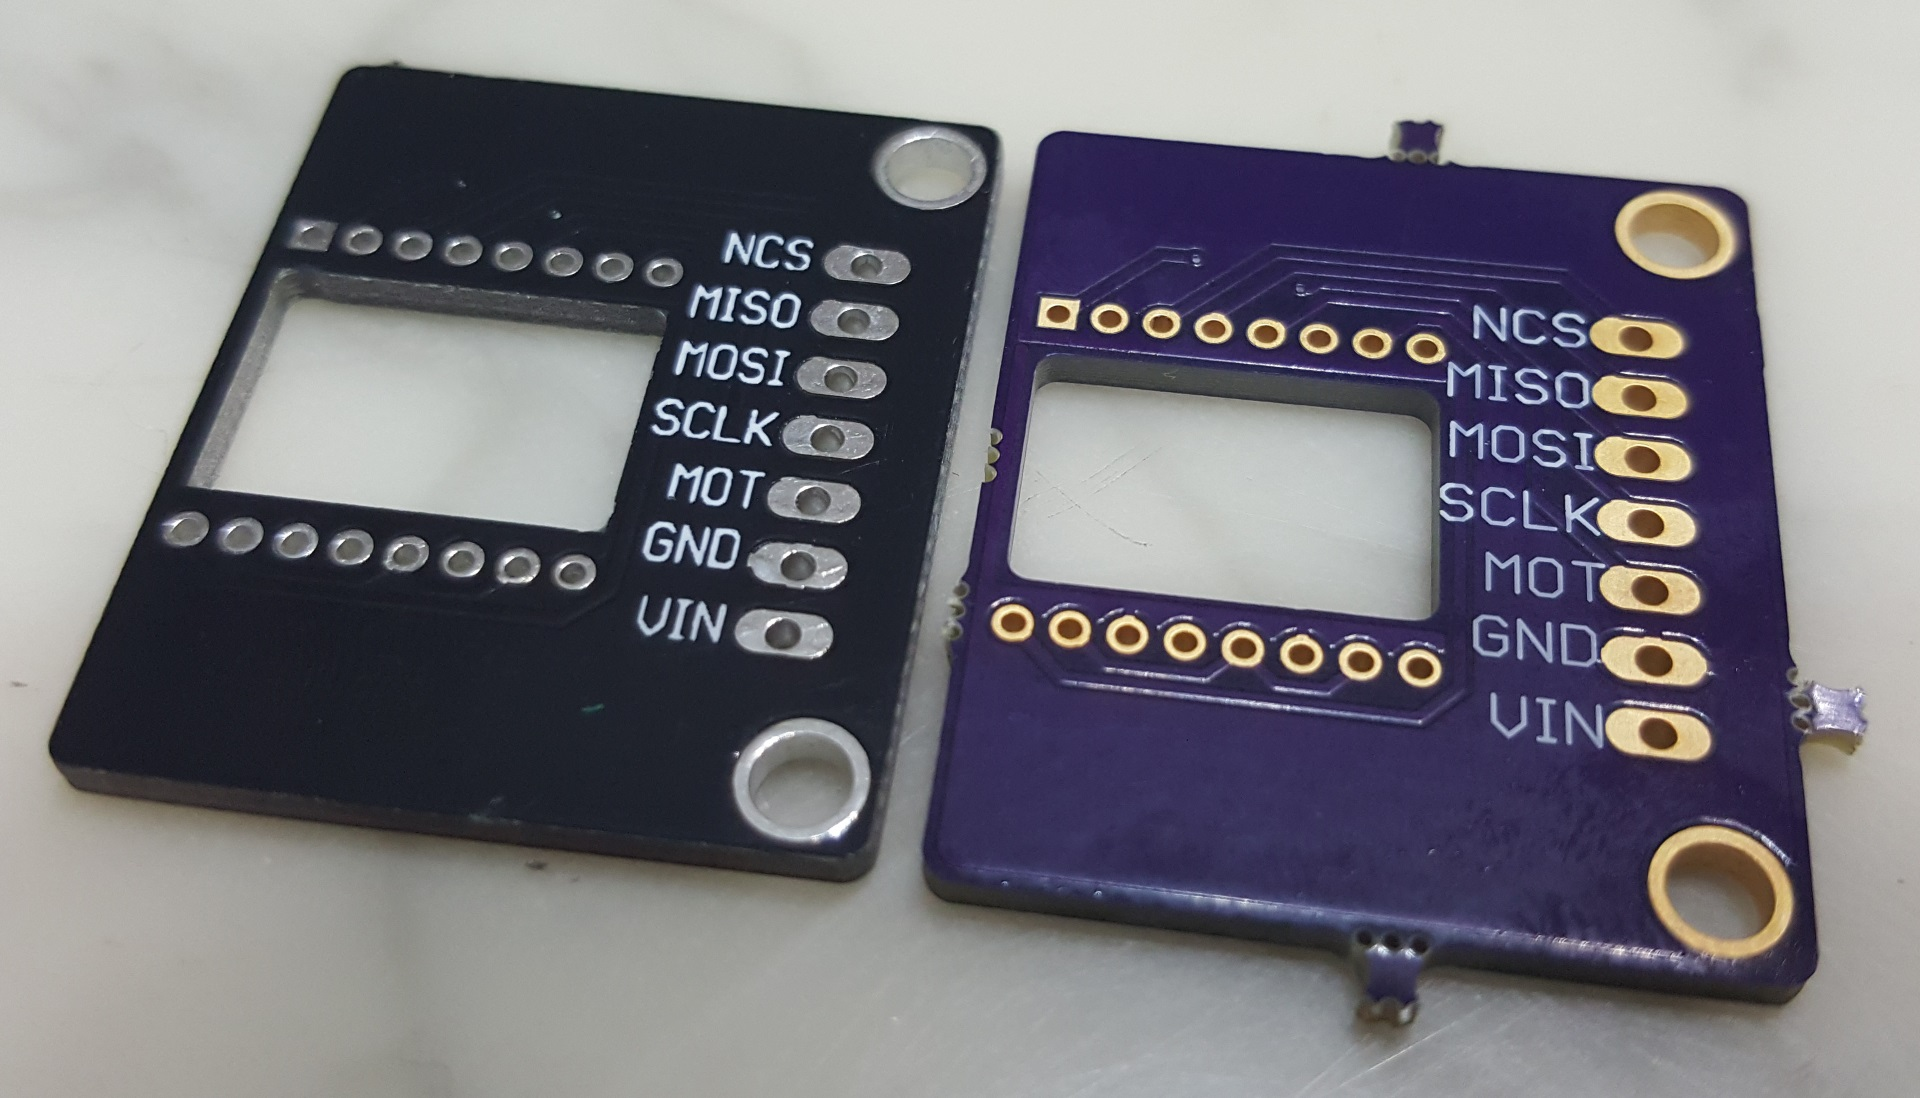 Madox Fusion Pcb Service Upgraded With Even Lower Pricing Seeed Studio Pcbway Vs Oshpark